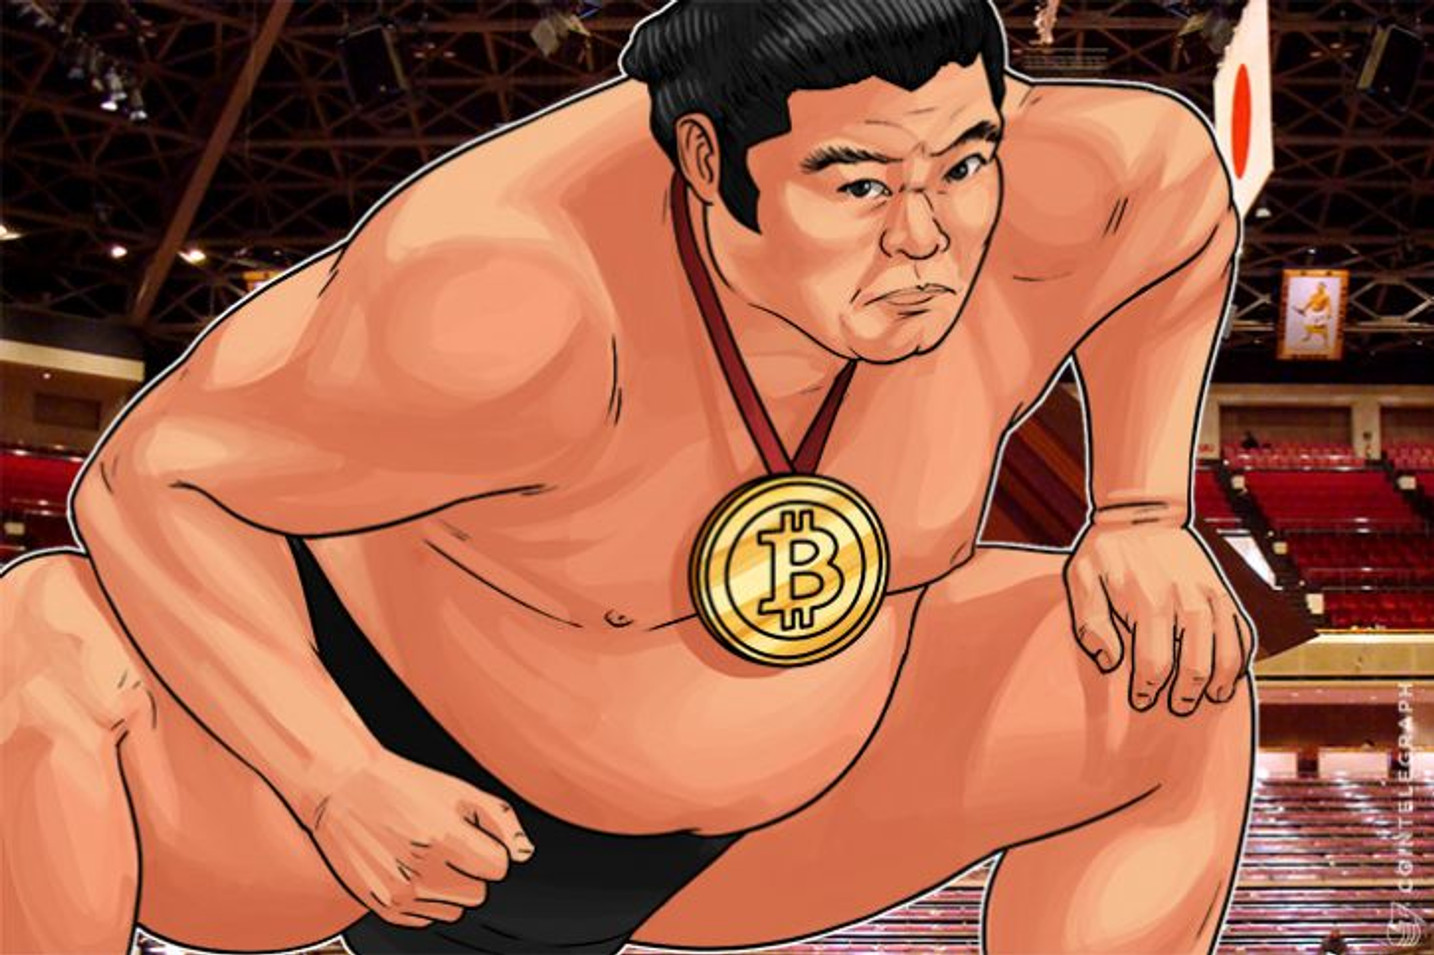 Japan Bitcoin Exchange Licence Gets 18 Applicants In First Month